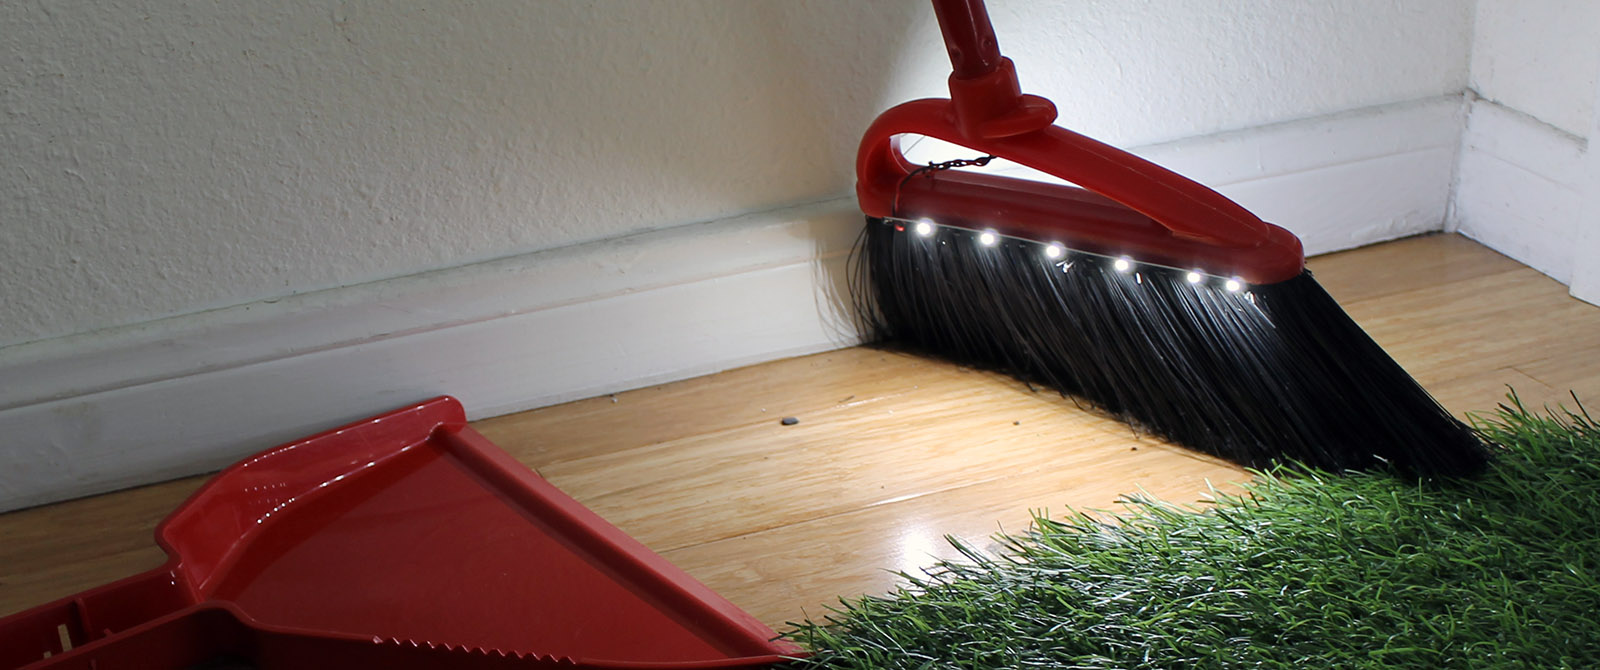 Build An Led Broom To Light Up Lifes Dark Corners Make How Wire Electrical Socket 6 Steps Wikihow Has A Pretty Good Tutorial For Those Of You Ahem Snake People Who May Have Never Used This Object Before